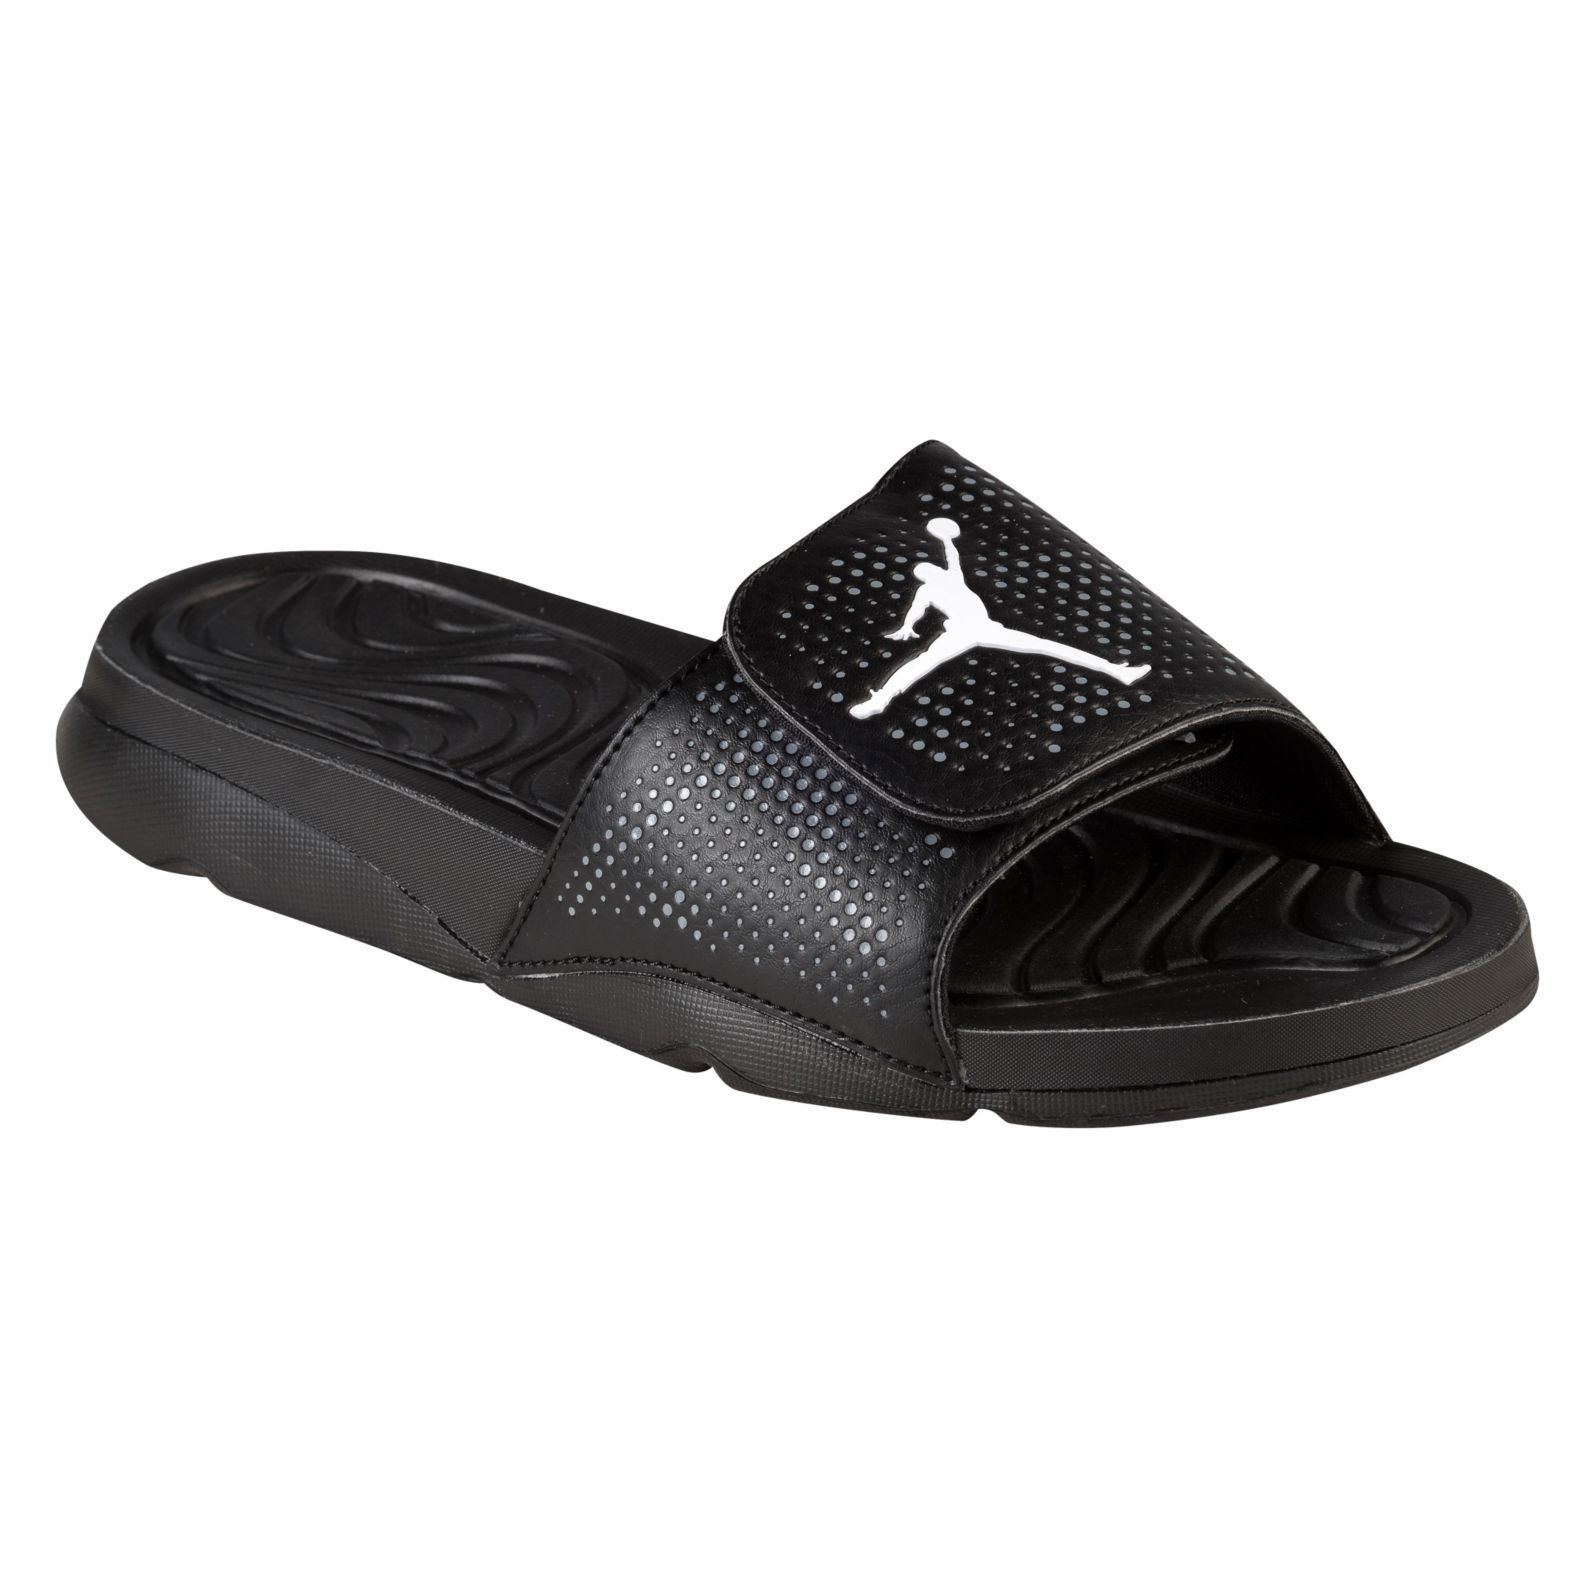 Nike Air Jordan Mens Hydro V Slides Shoes Flip Flops Size 9 NIB